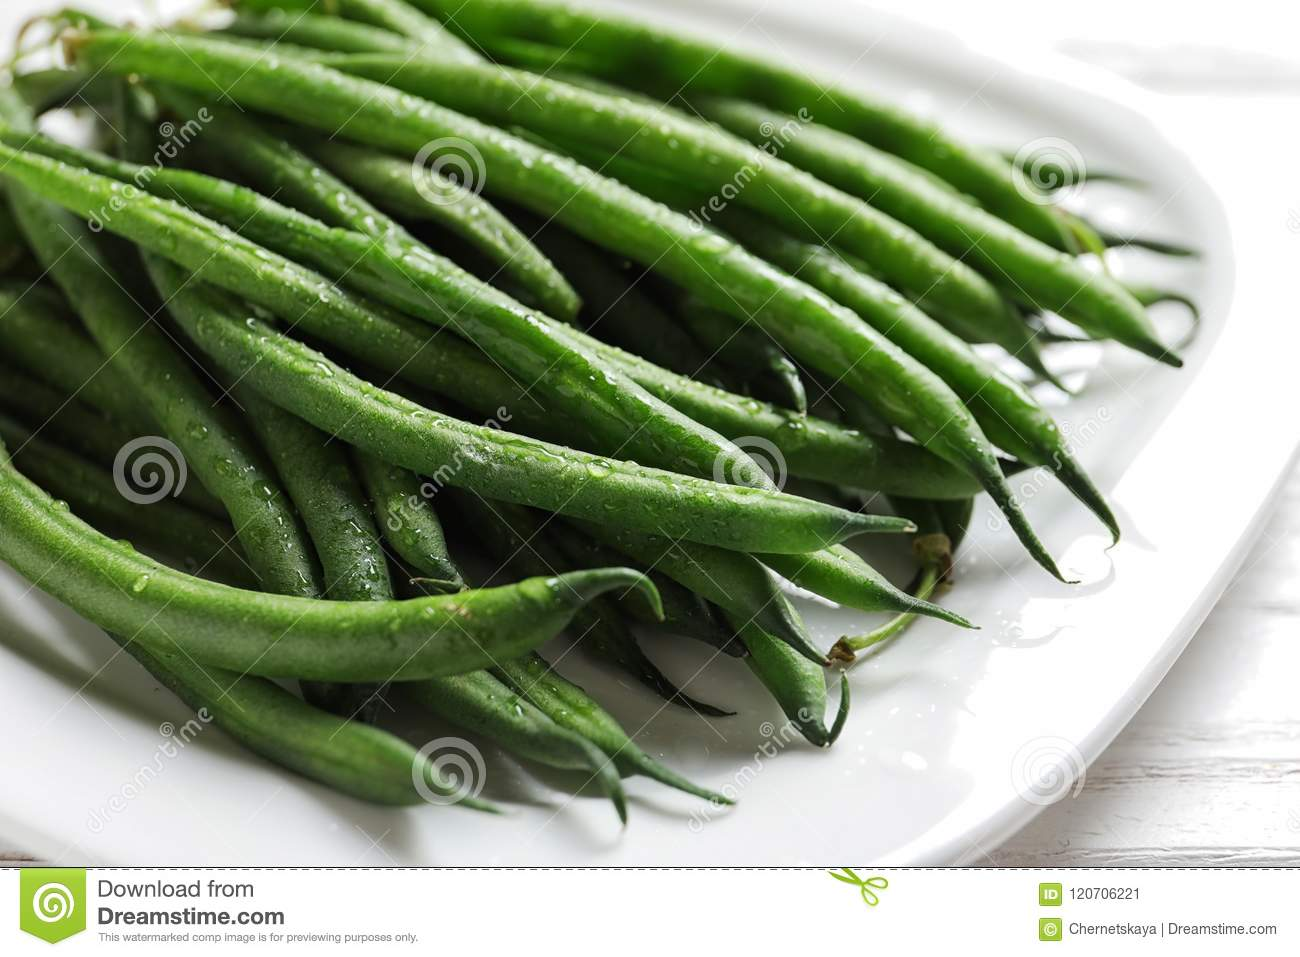 Plate with fresh green French beans on table